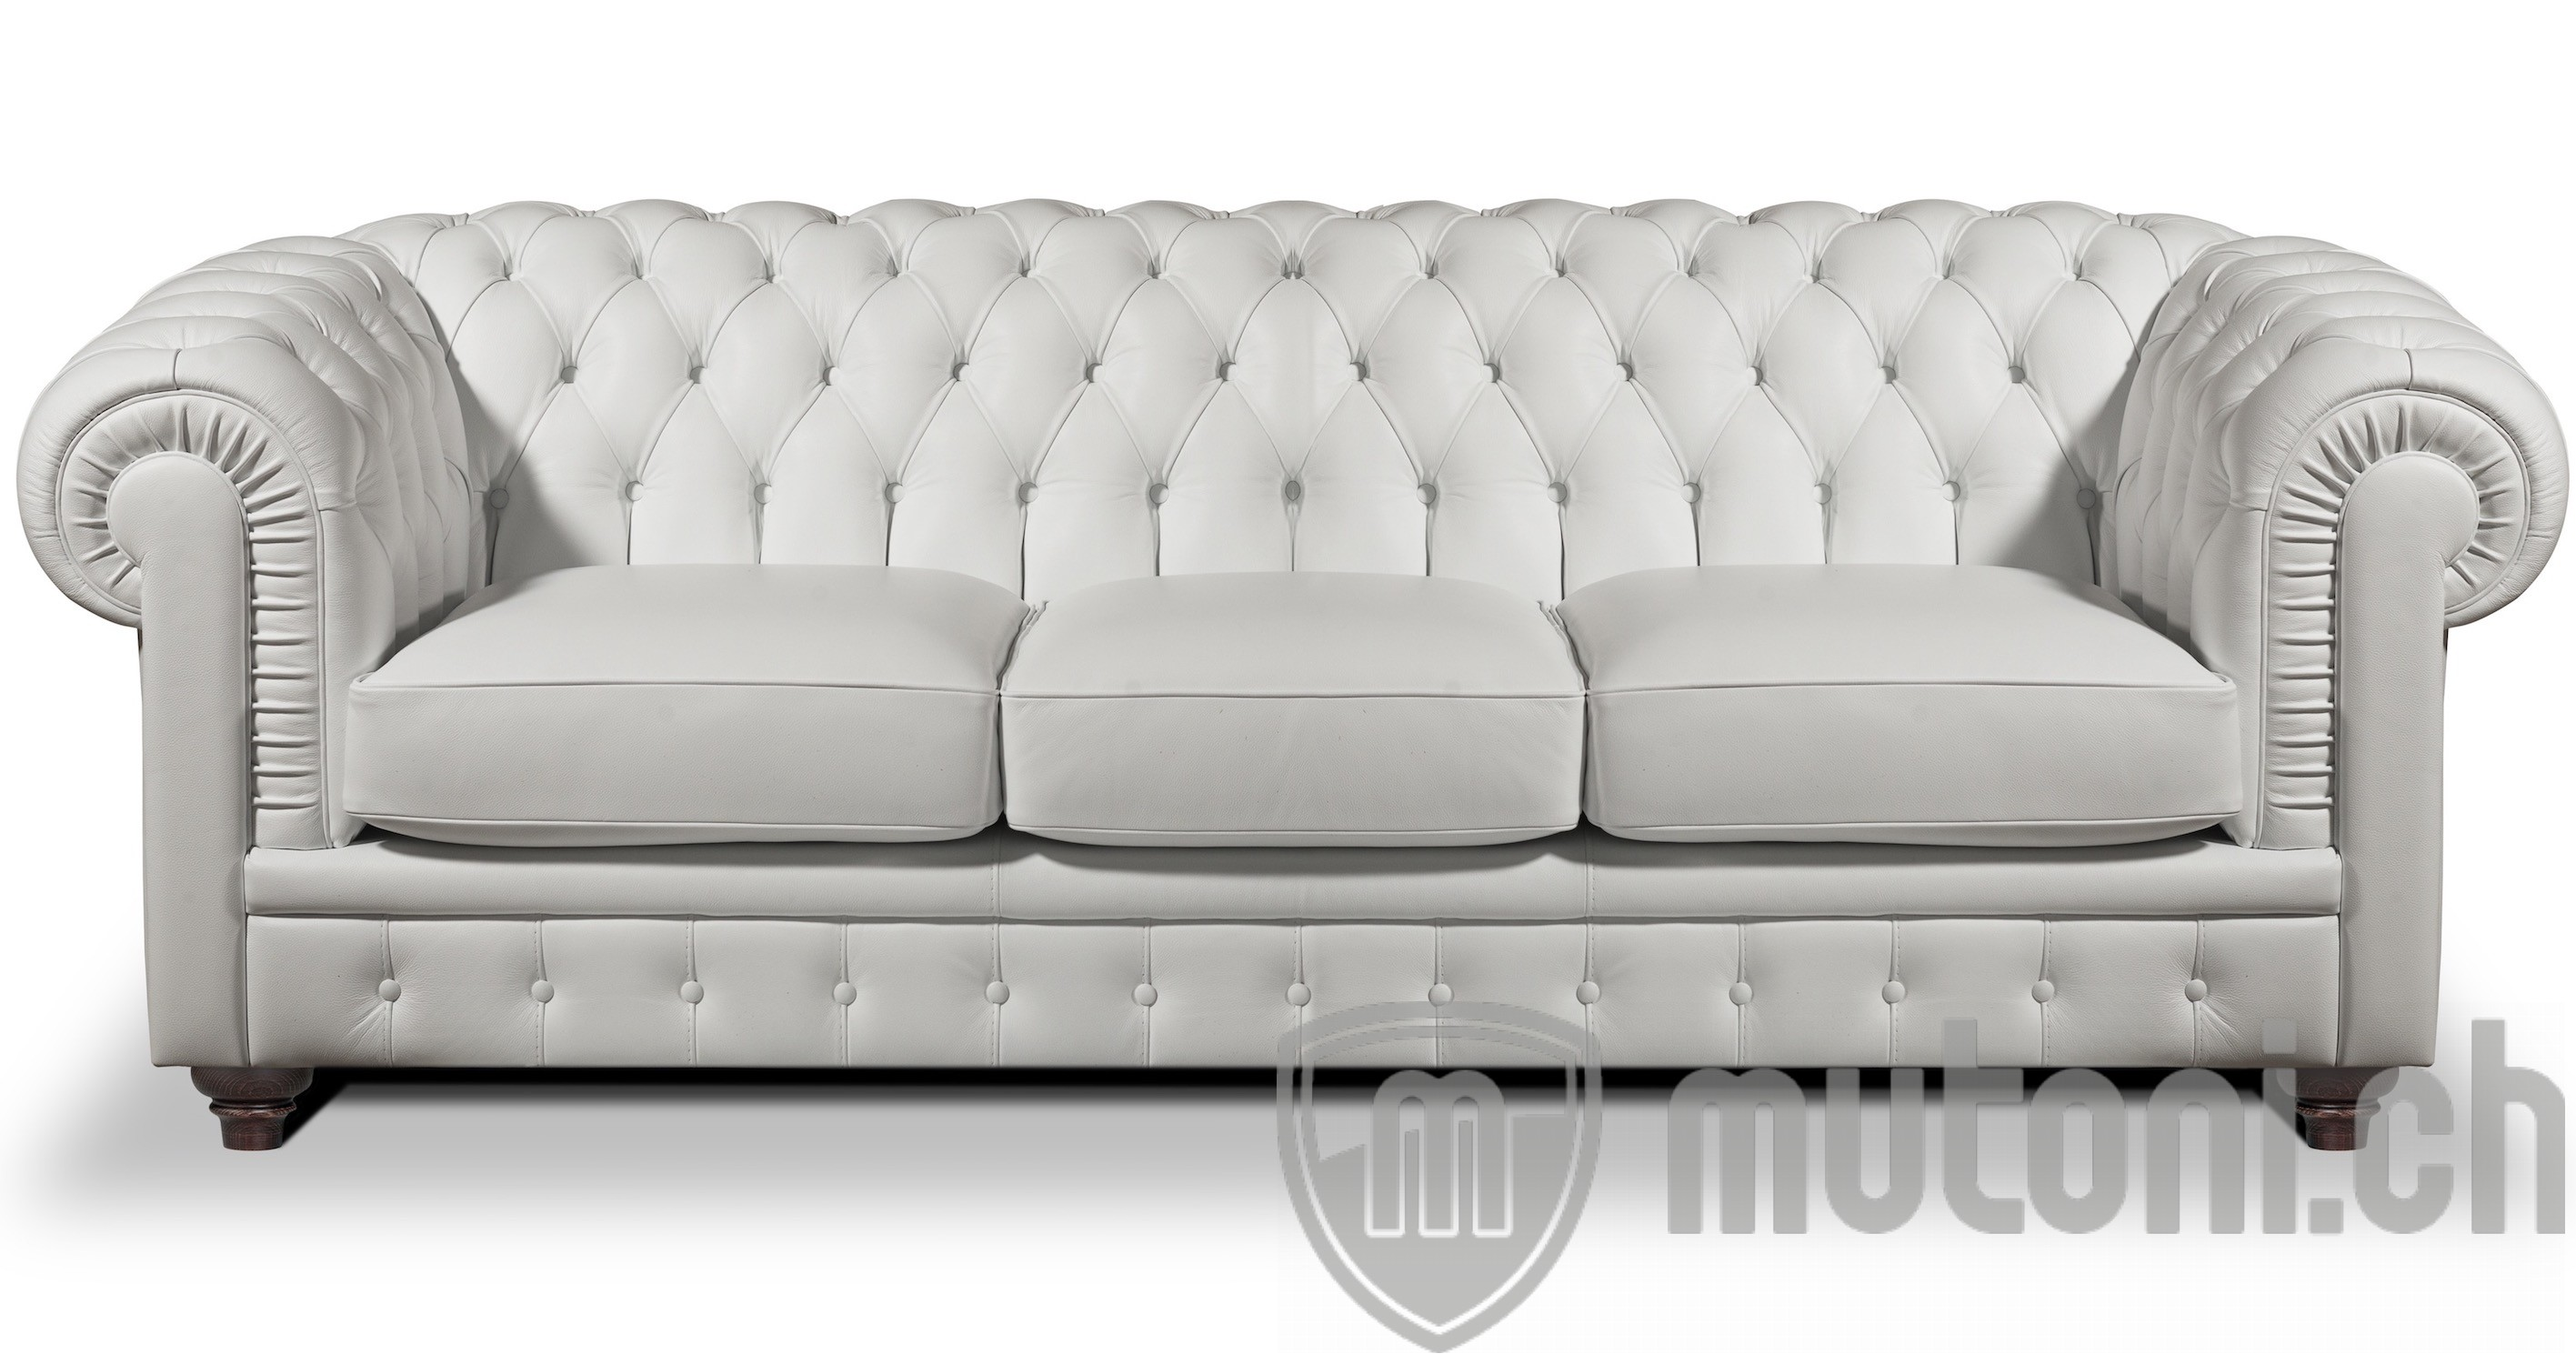 Chesterfield Wohnzimmer Chesterfield Sofa Pavarotti Deluxe Edition 3er Sofa 225cm